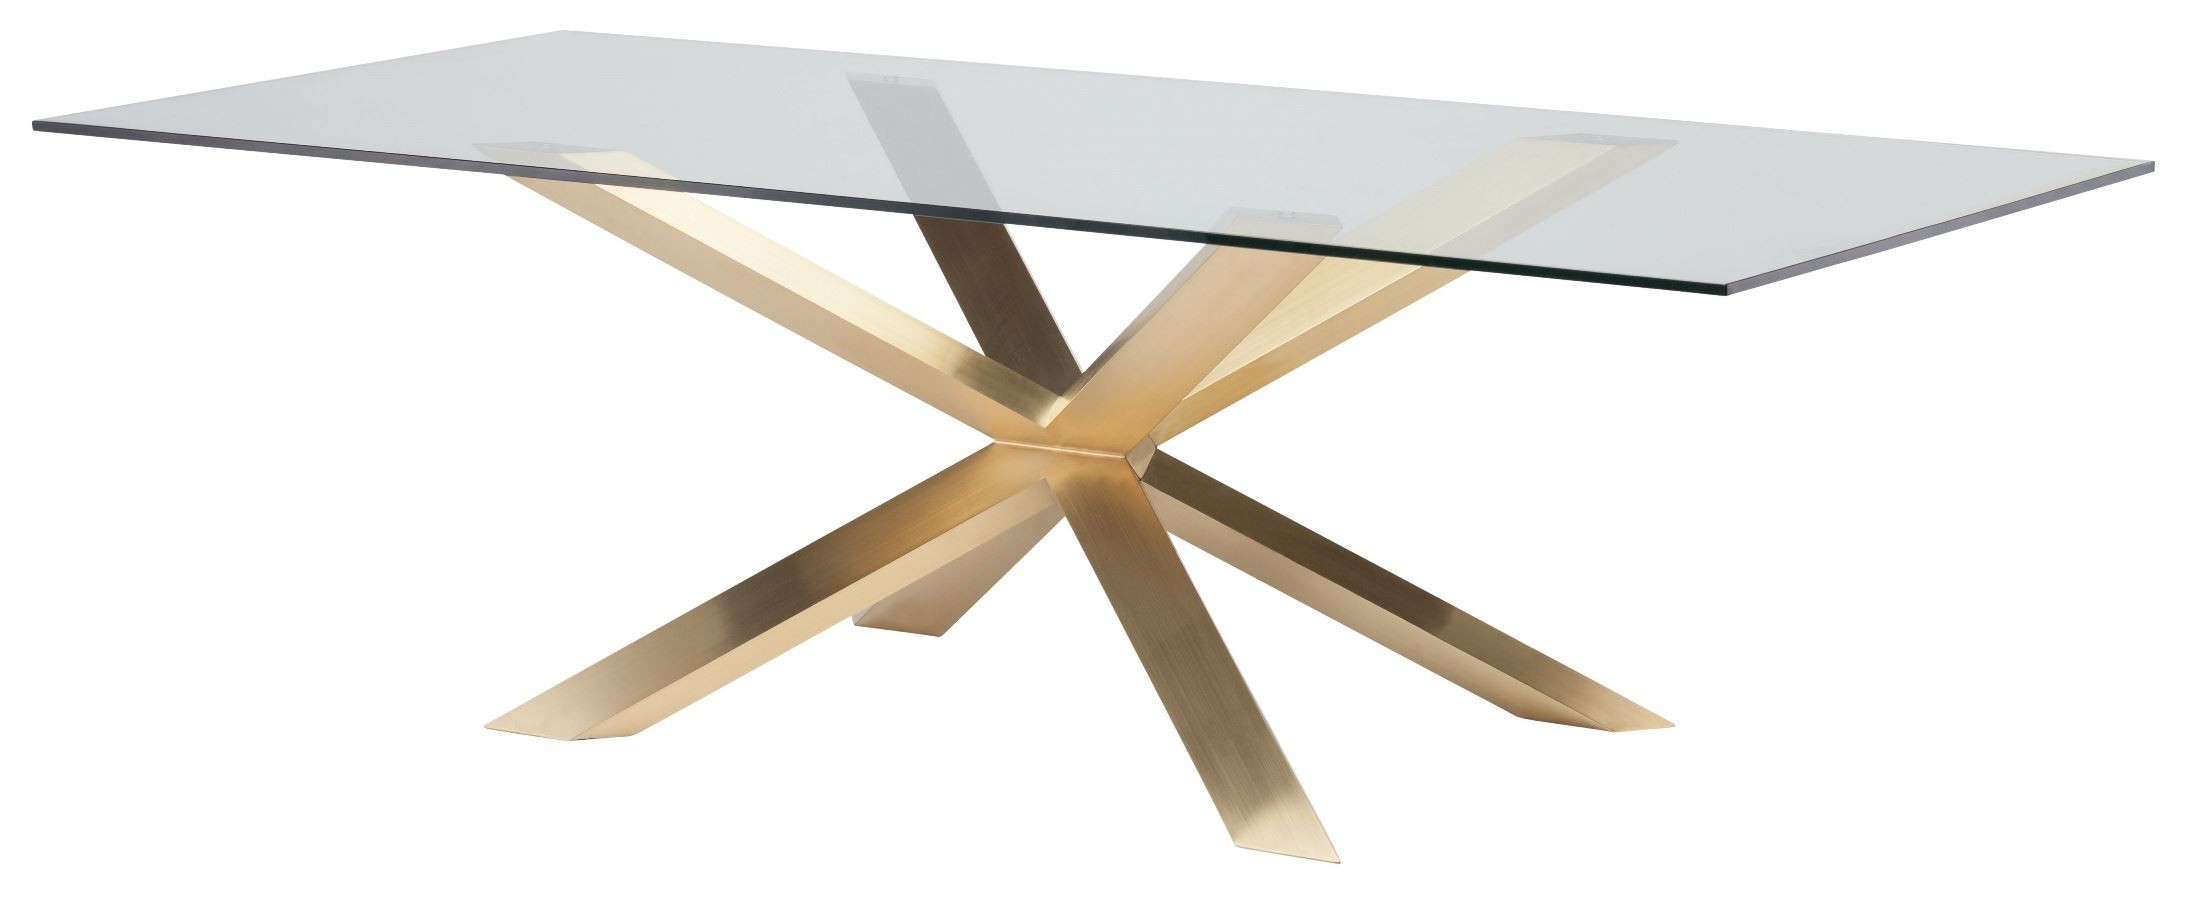 Couture 94 Quot Brushed Gold Clear Glass Dining Table Hgsx149